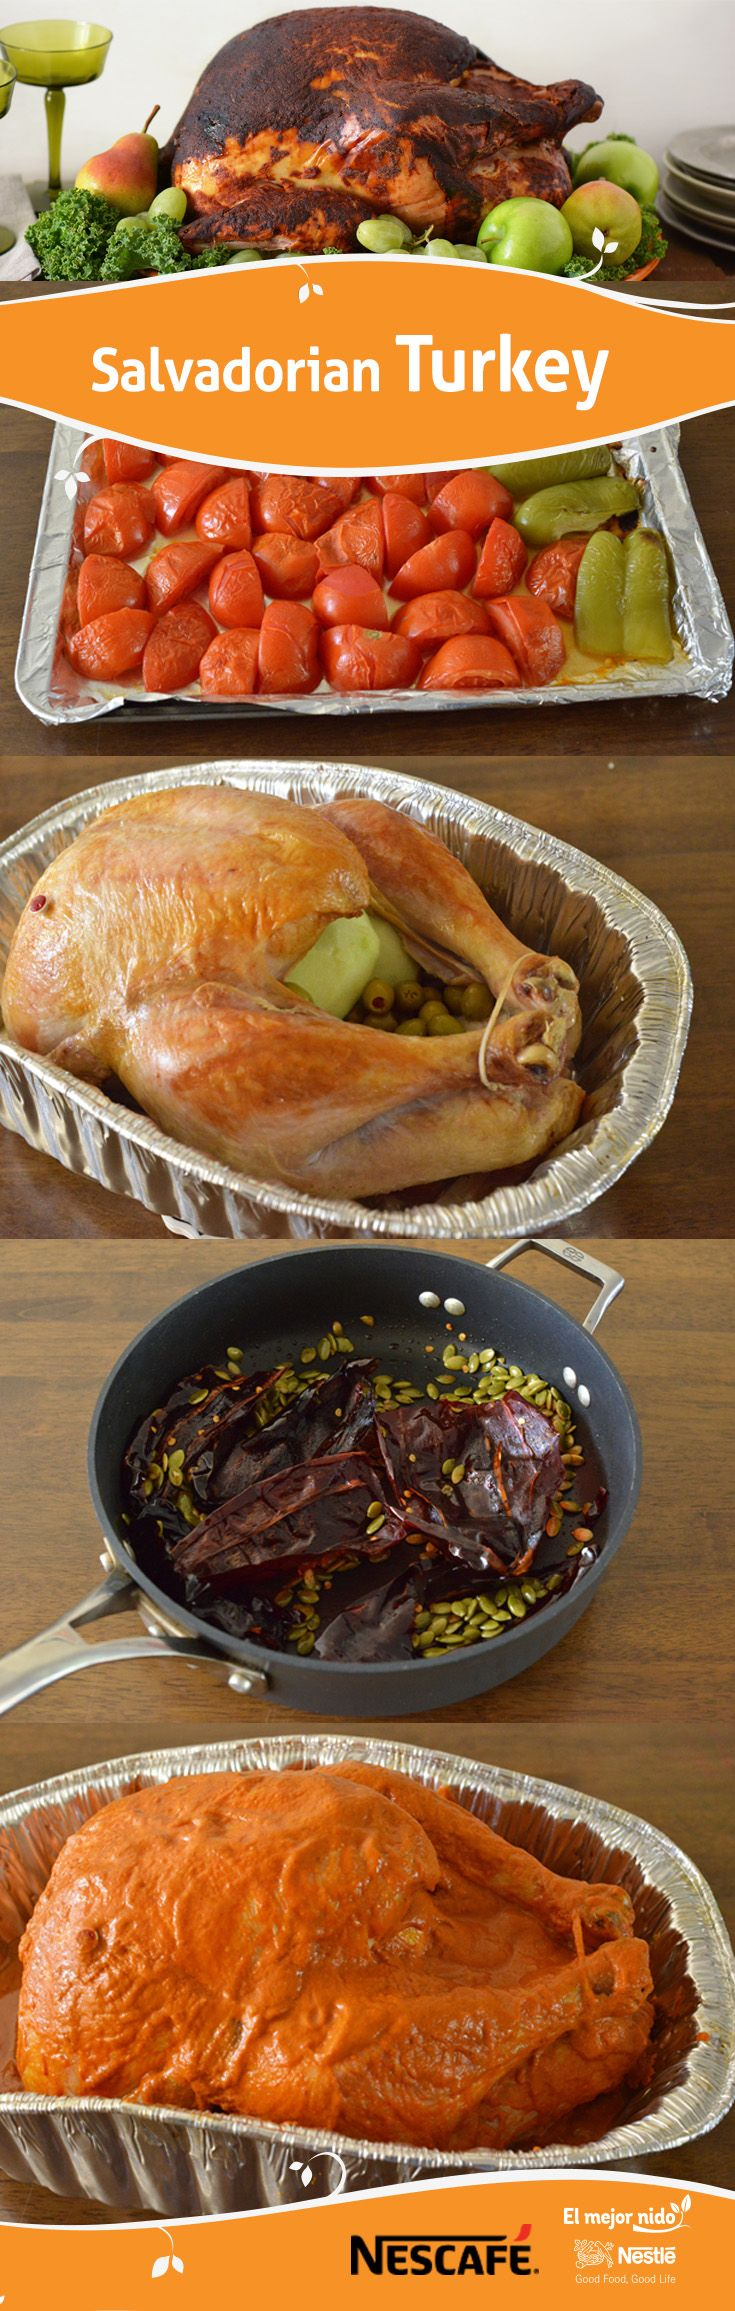 If you like spicy food, then this Salvadorian turkey is for you. Celebrate the flavor of ancho chili and pumpkin seed of this Latin country, by preparing this recipe that leaves your turkey crispy, juicy and with the right amount of pepper.